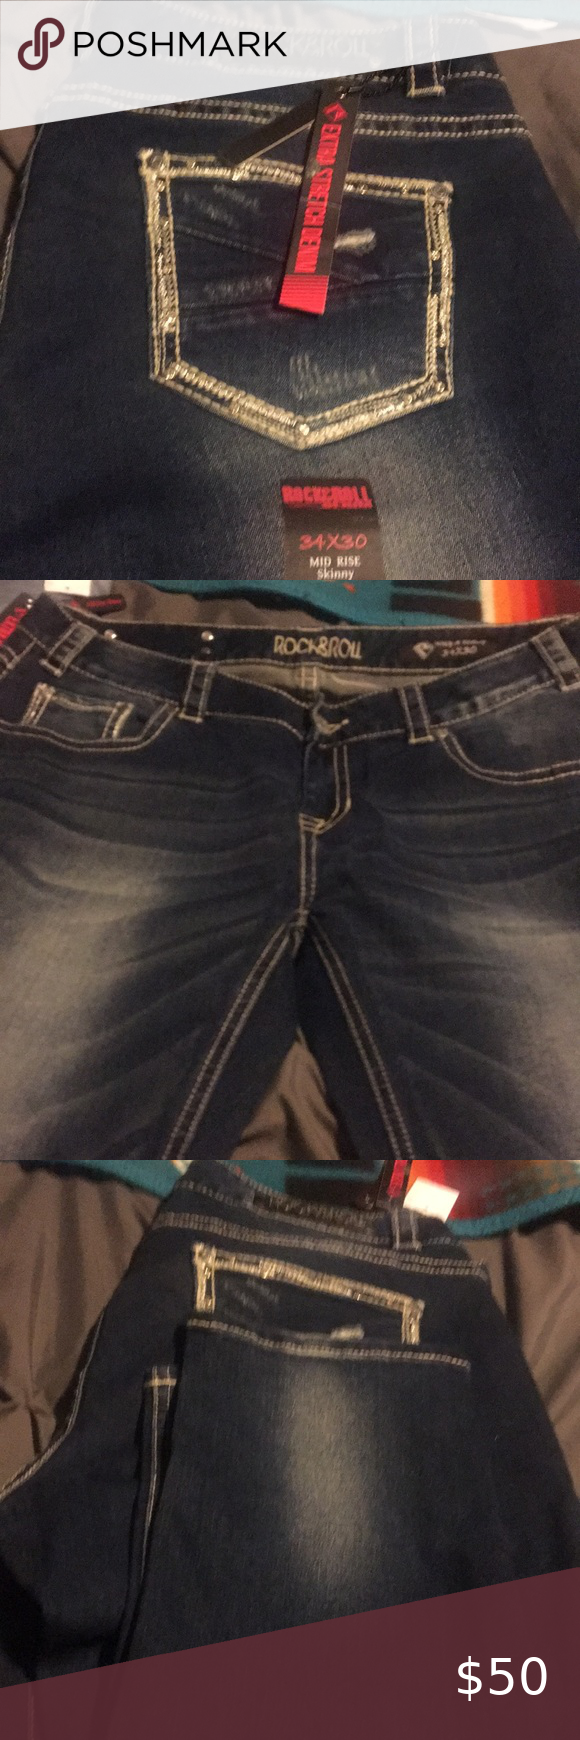 Rock and roll jeans Rock 'n' roll jeans brand new with the tags on them size 34×30 mid rise skinny Rock & Roll Cowgirl Jeans Skinny #rockandrolloutfits